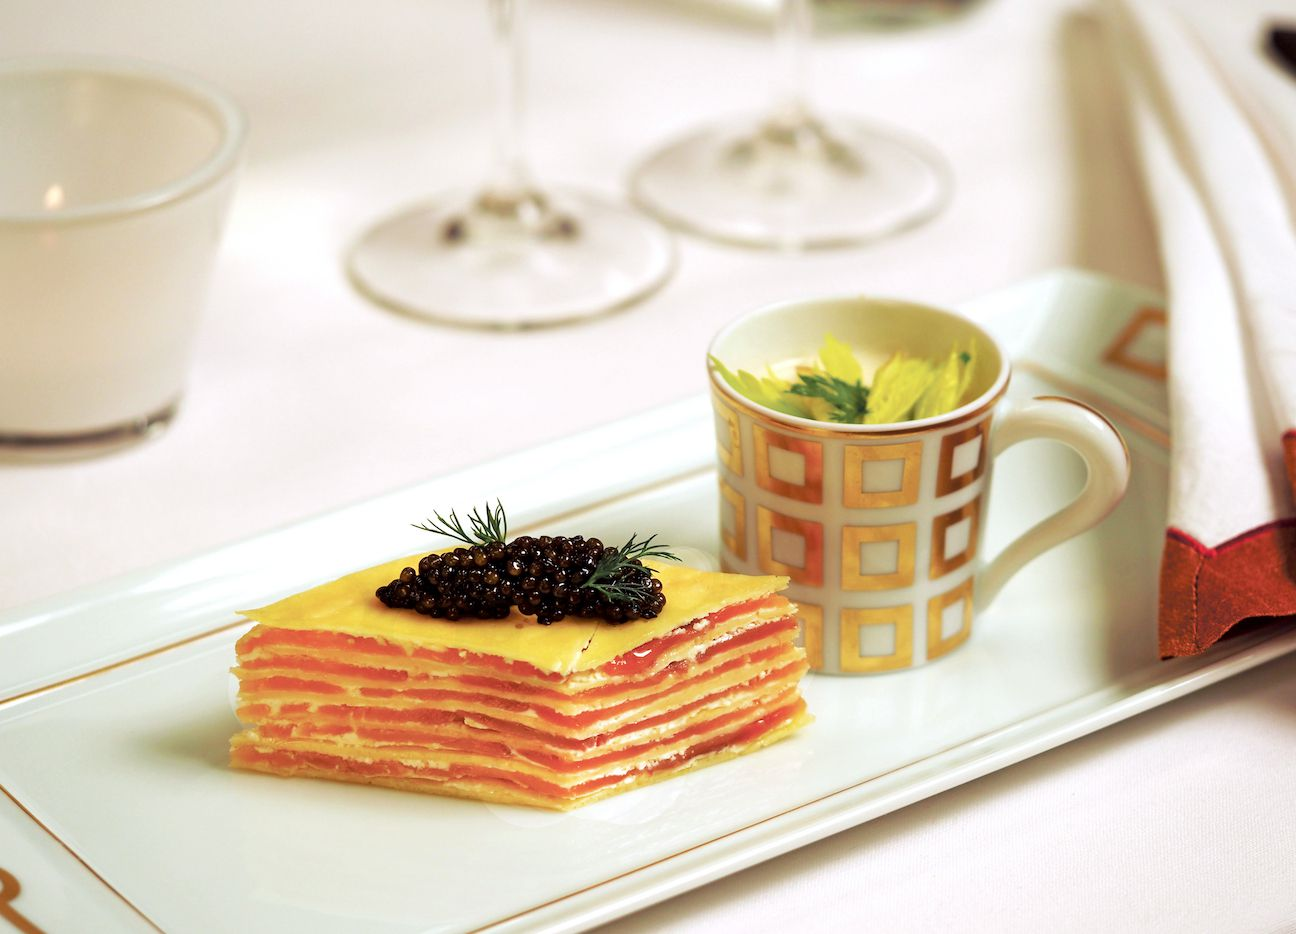 Smoked Salmon Mille-Feuille (layered salmon crepes) from chef Kelly Bianchi at Wynn Las Vegas